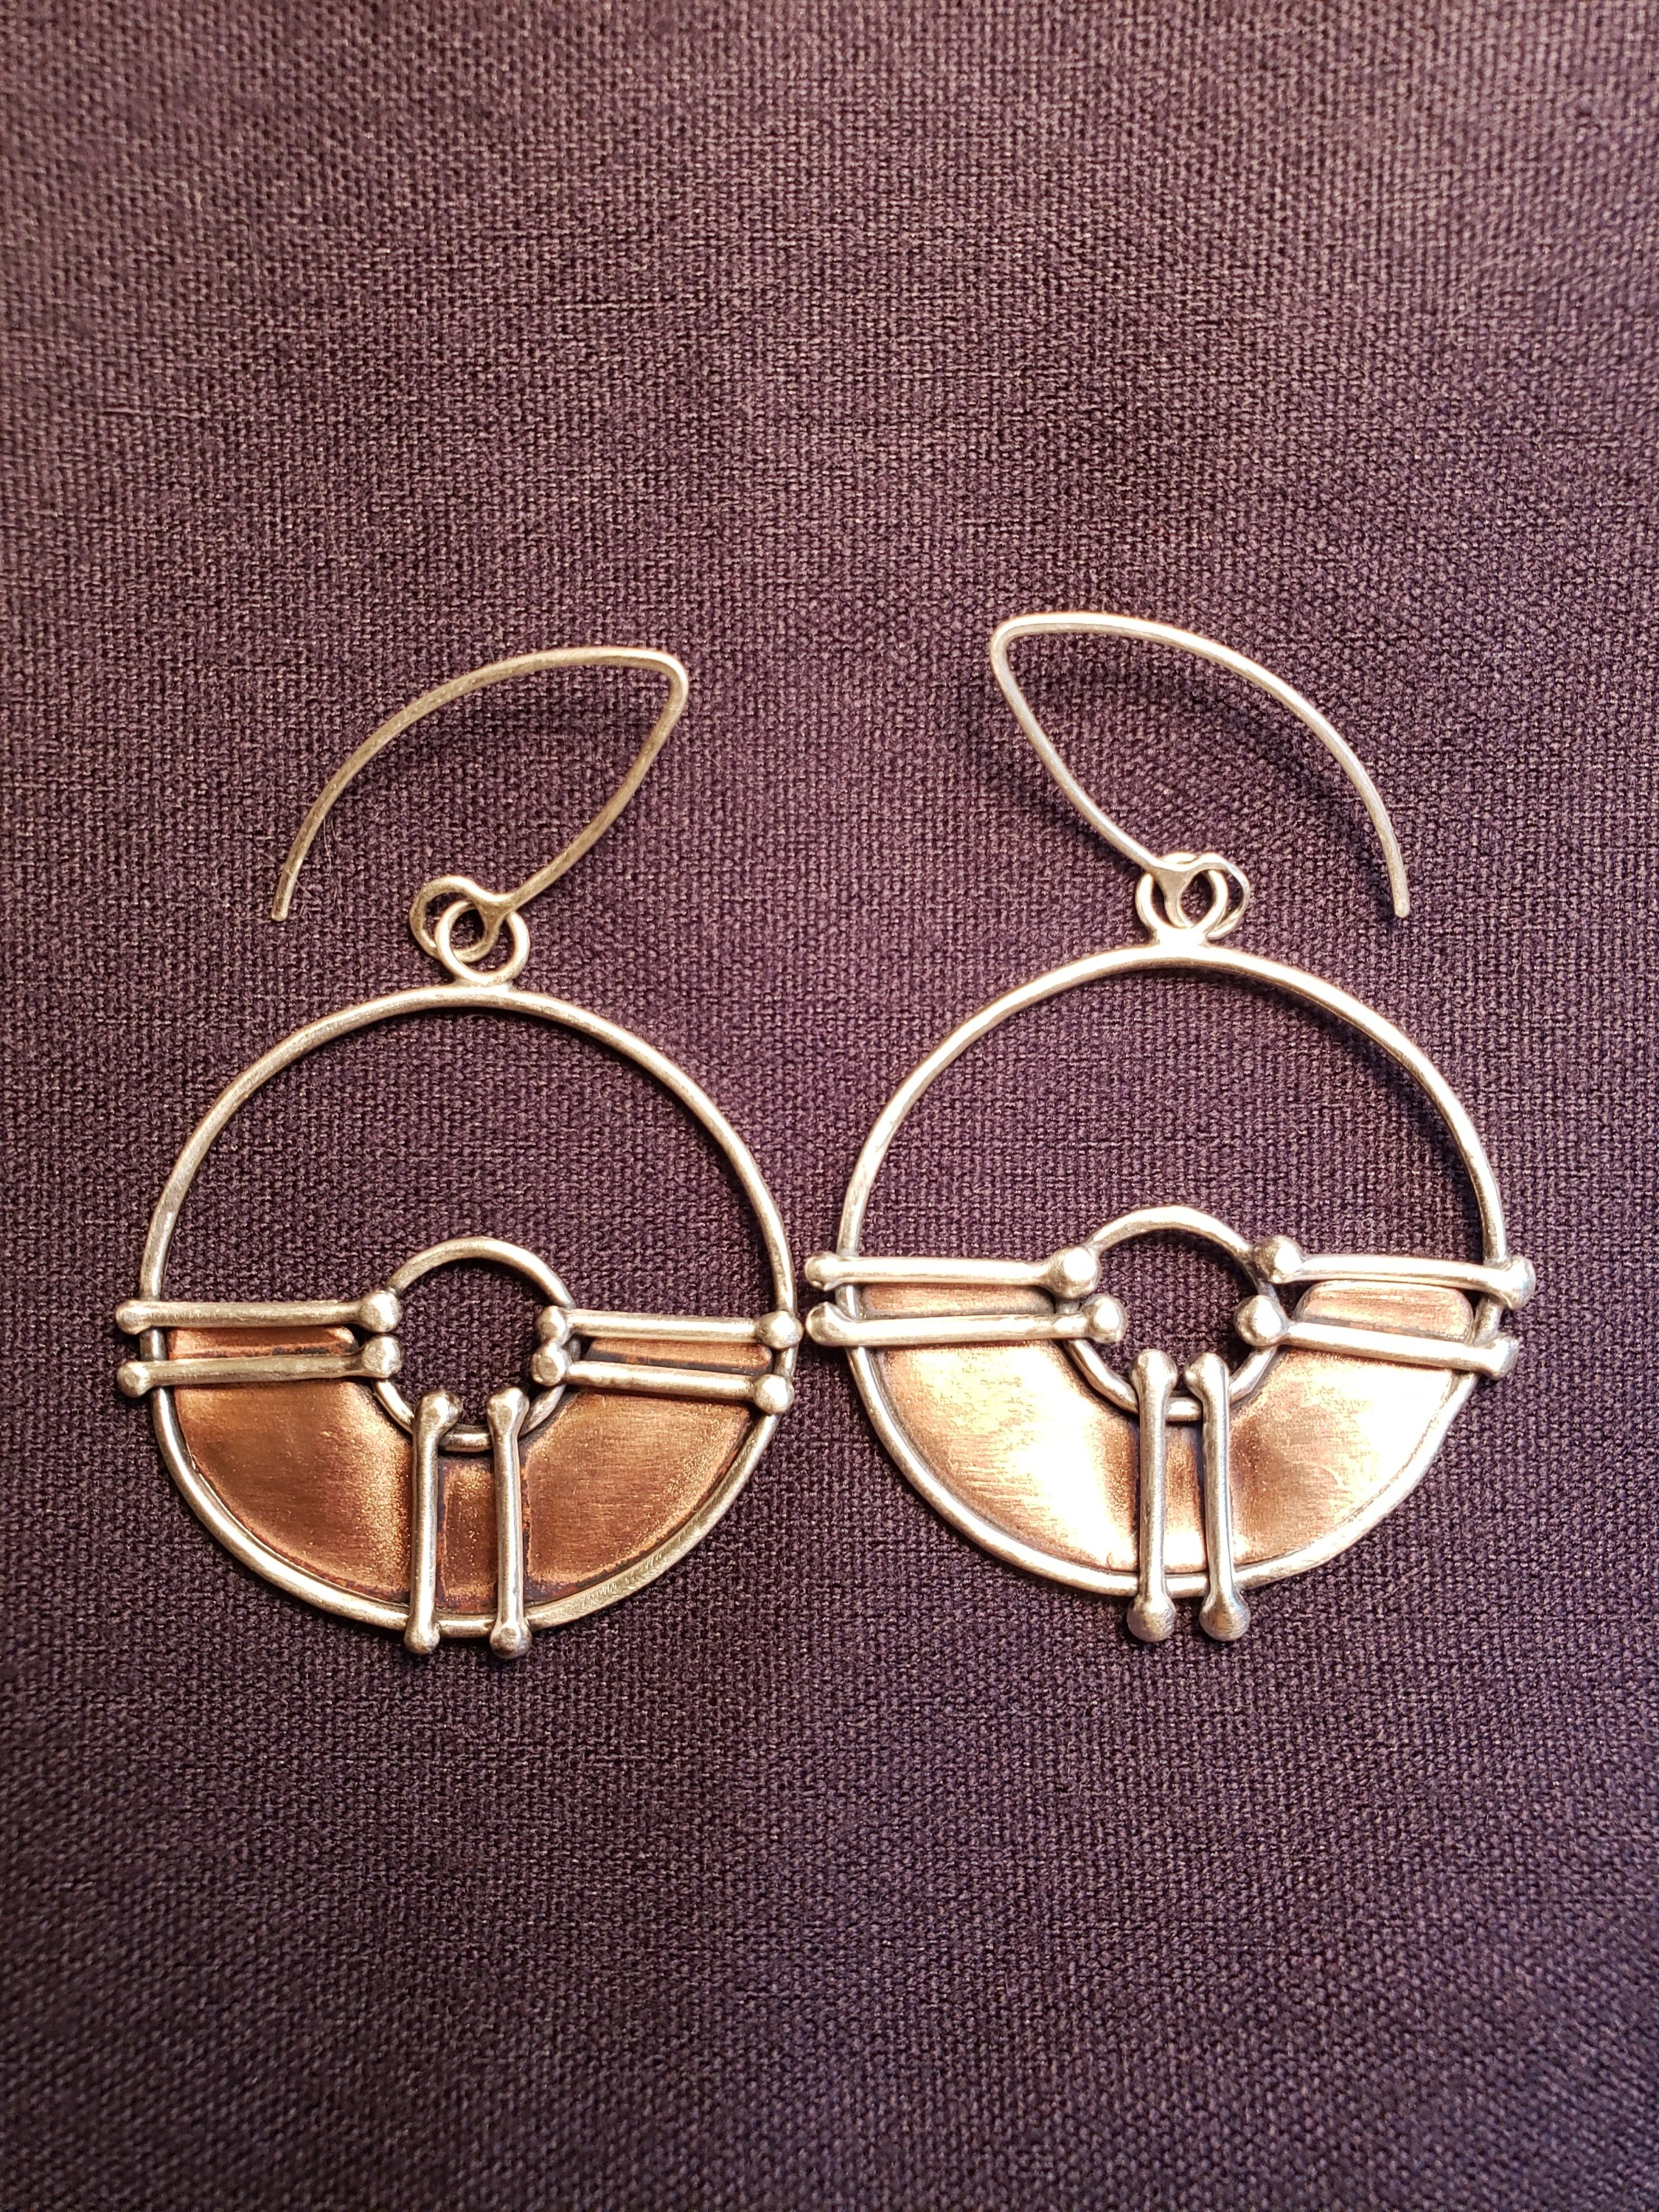 Hoops by JL Merrill Metalworks